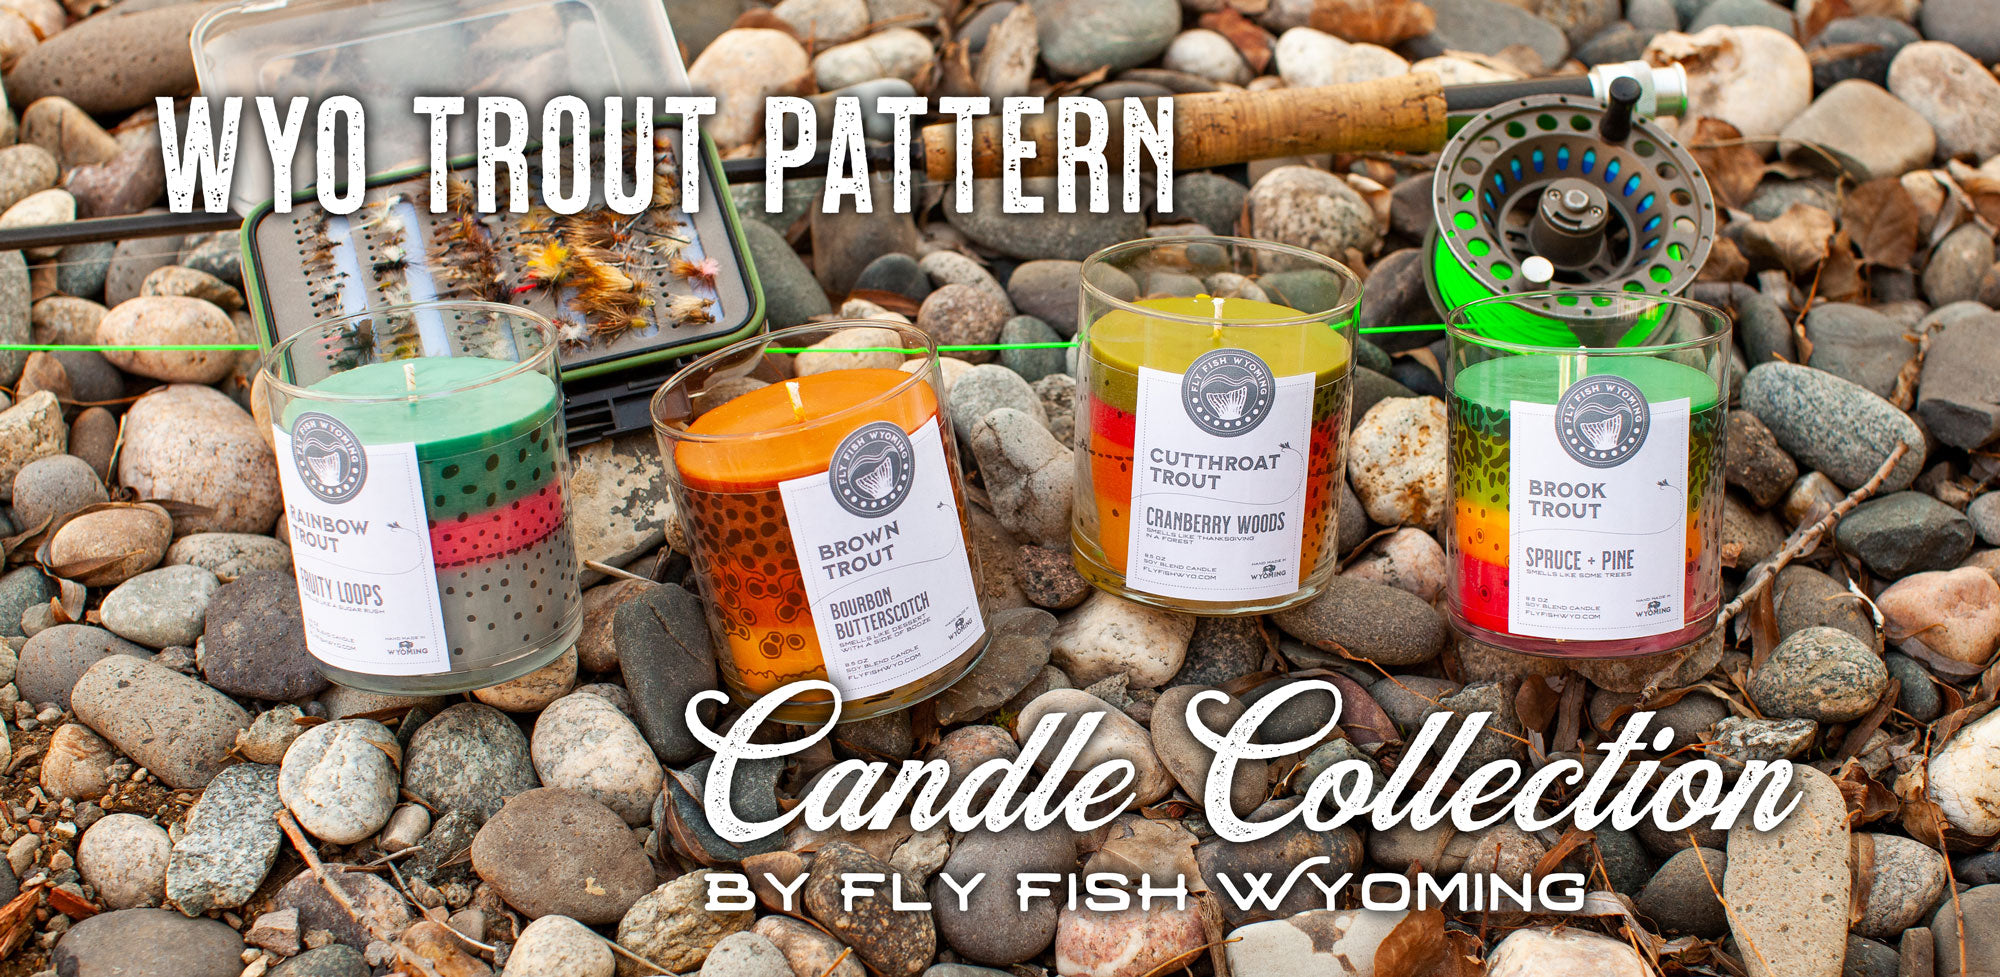 Wyoming trout, rainbow trout, cutthroat trout, brown trout, brook trout, fly fishing, candles